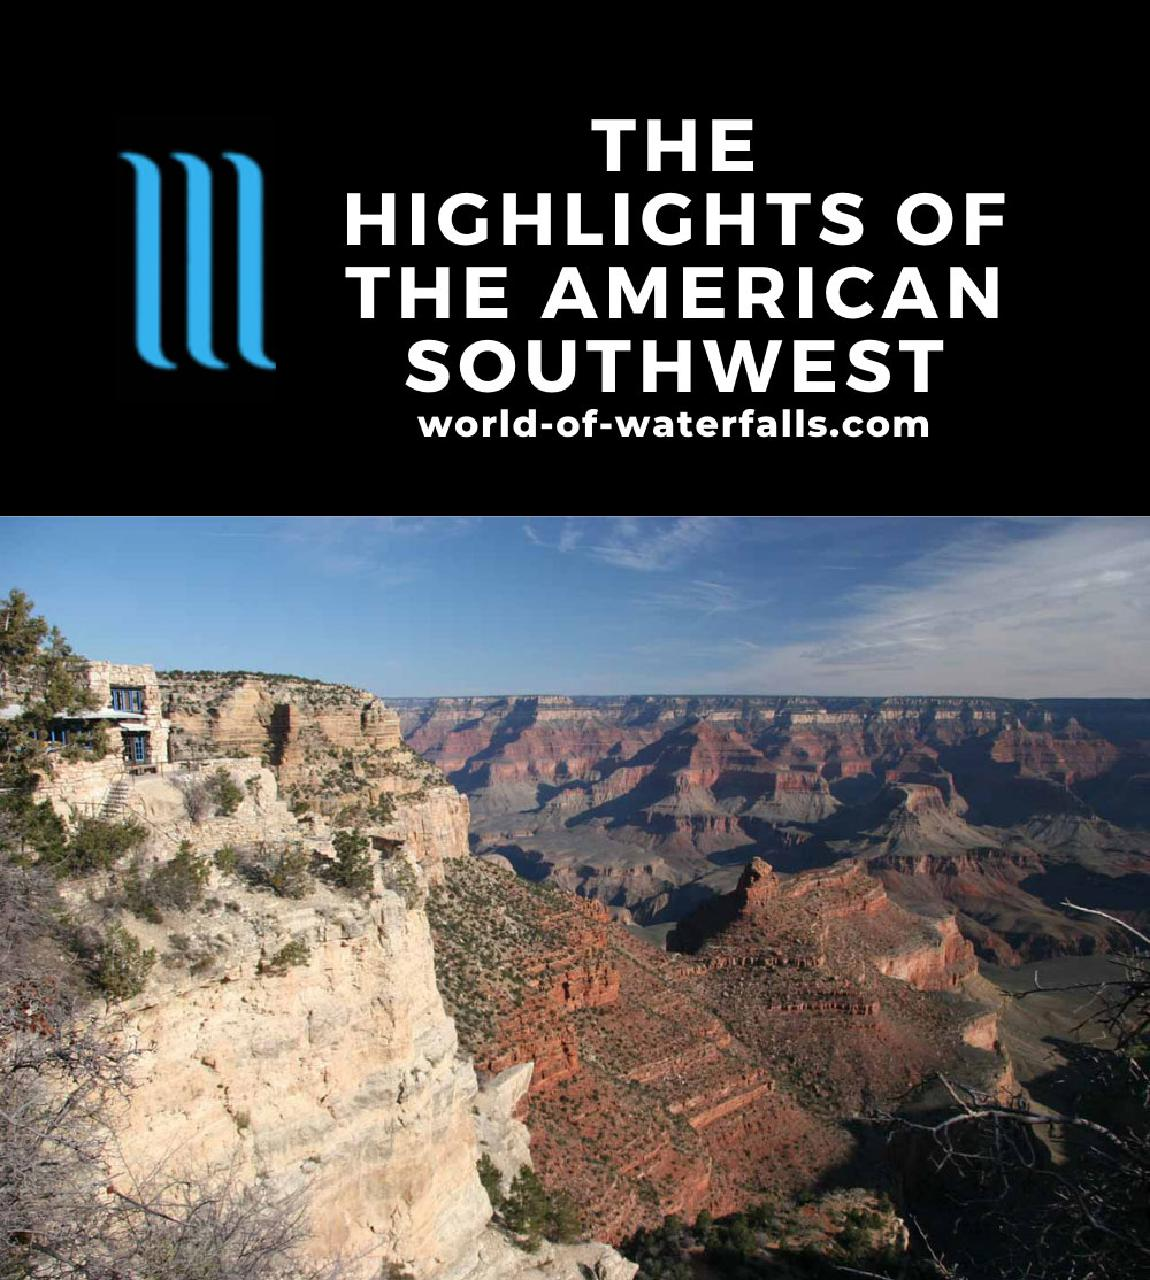 American Southwest Highlights